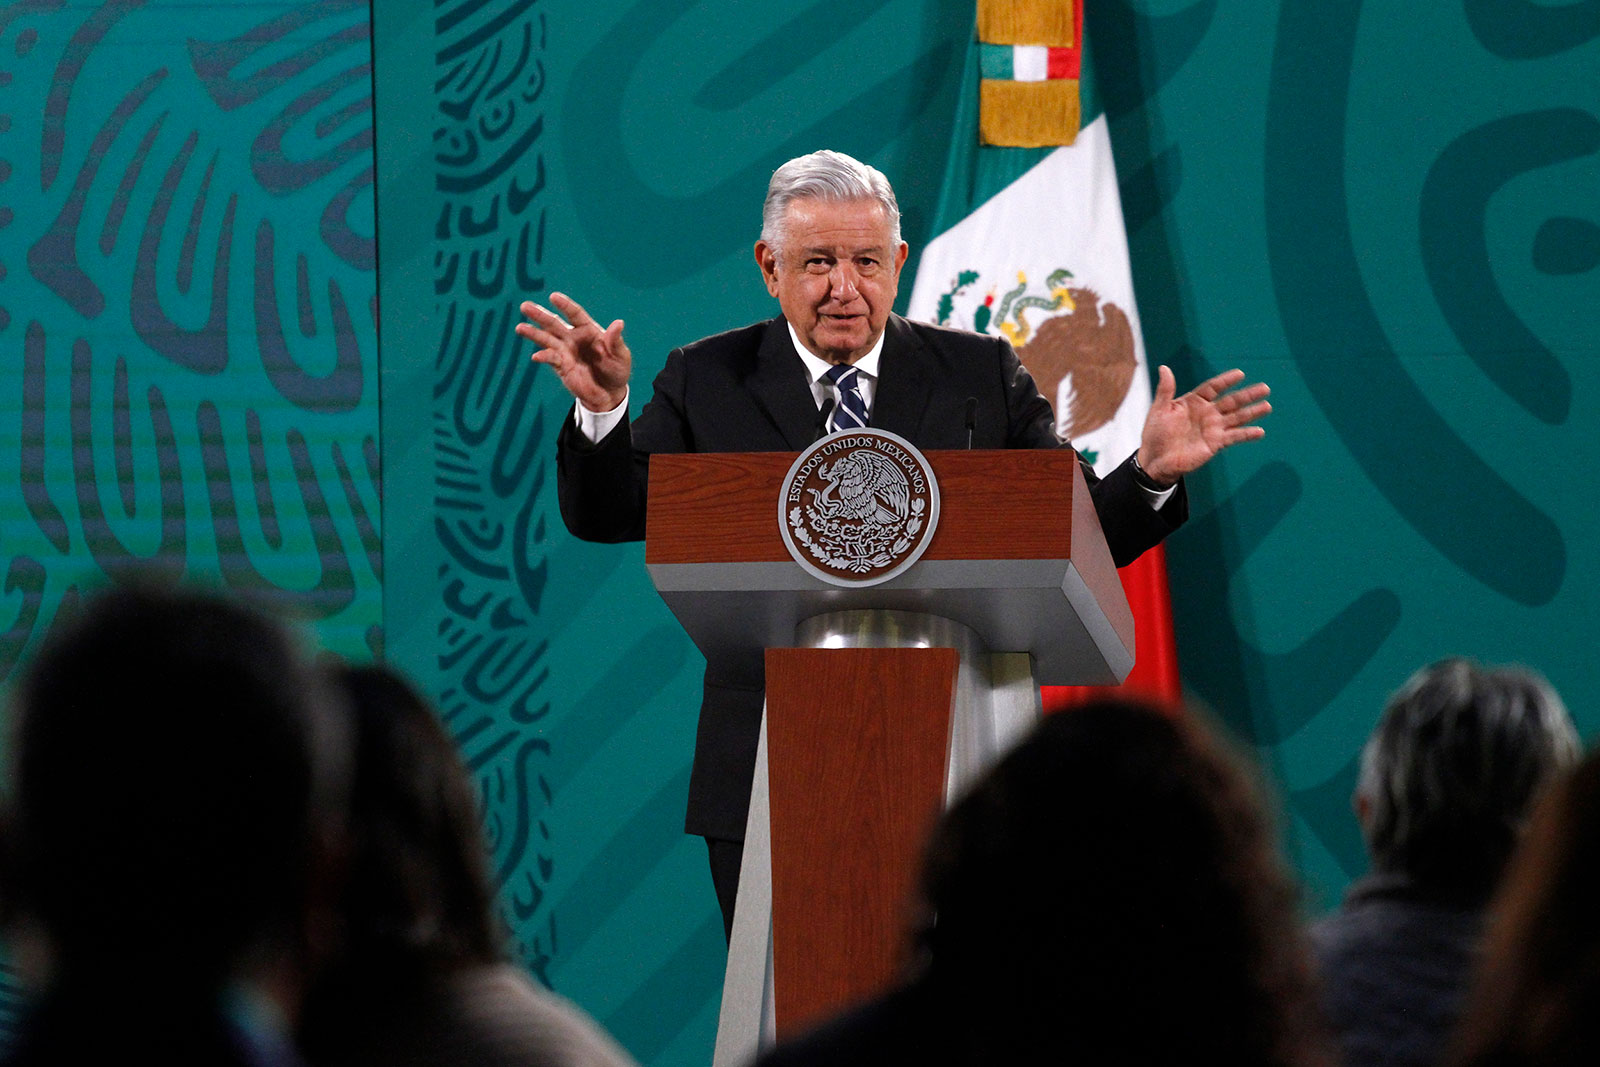 Mexico's President Andrés Manuel López Obrador speaks at a press conference in Mexico City on April 9.